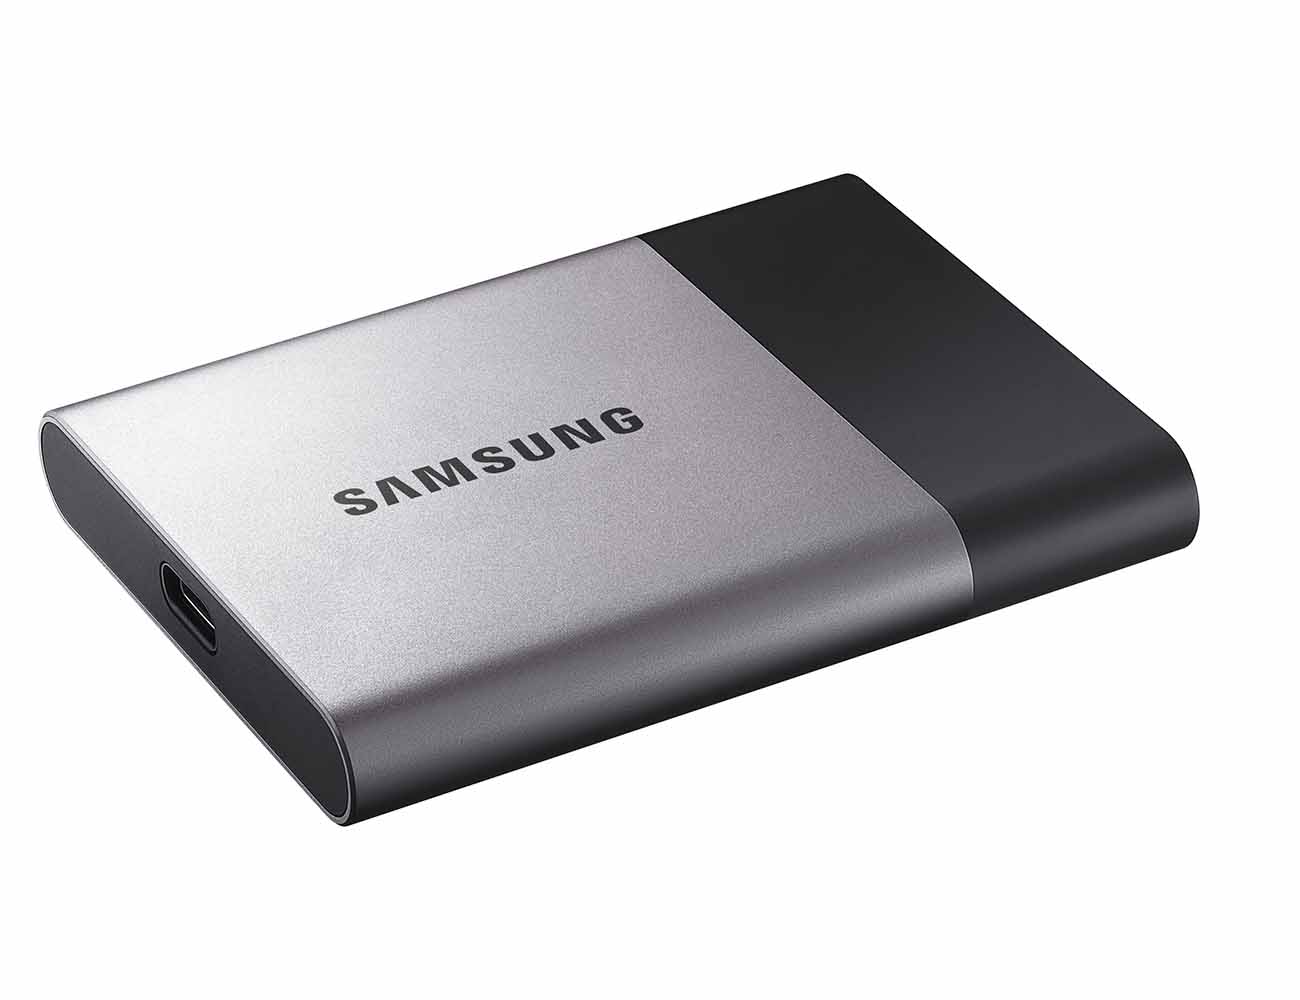 2TB Samsung Portable SSD External Storage Device